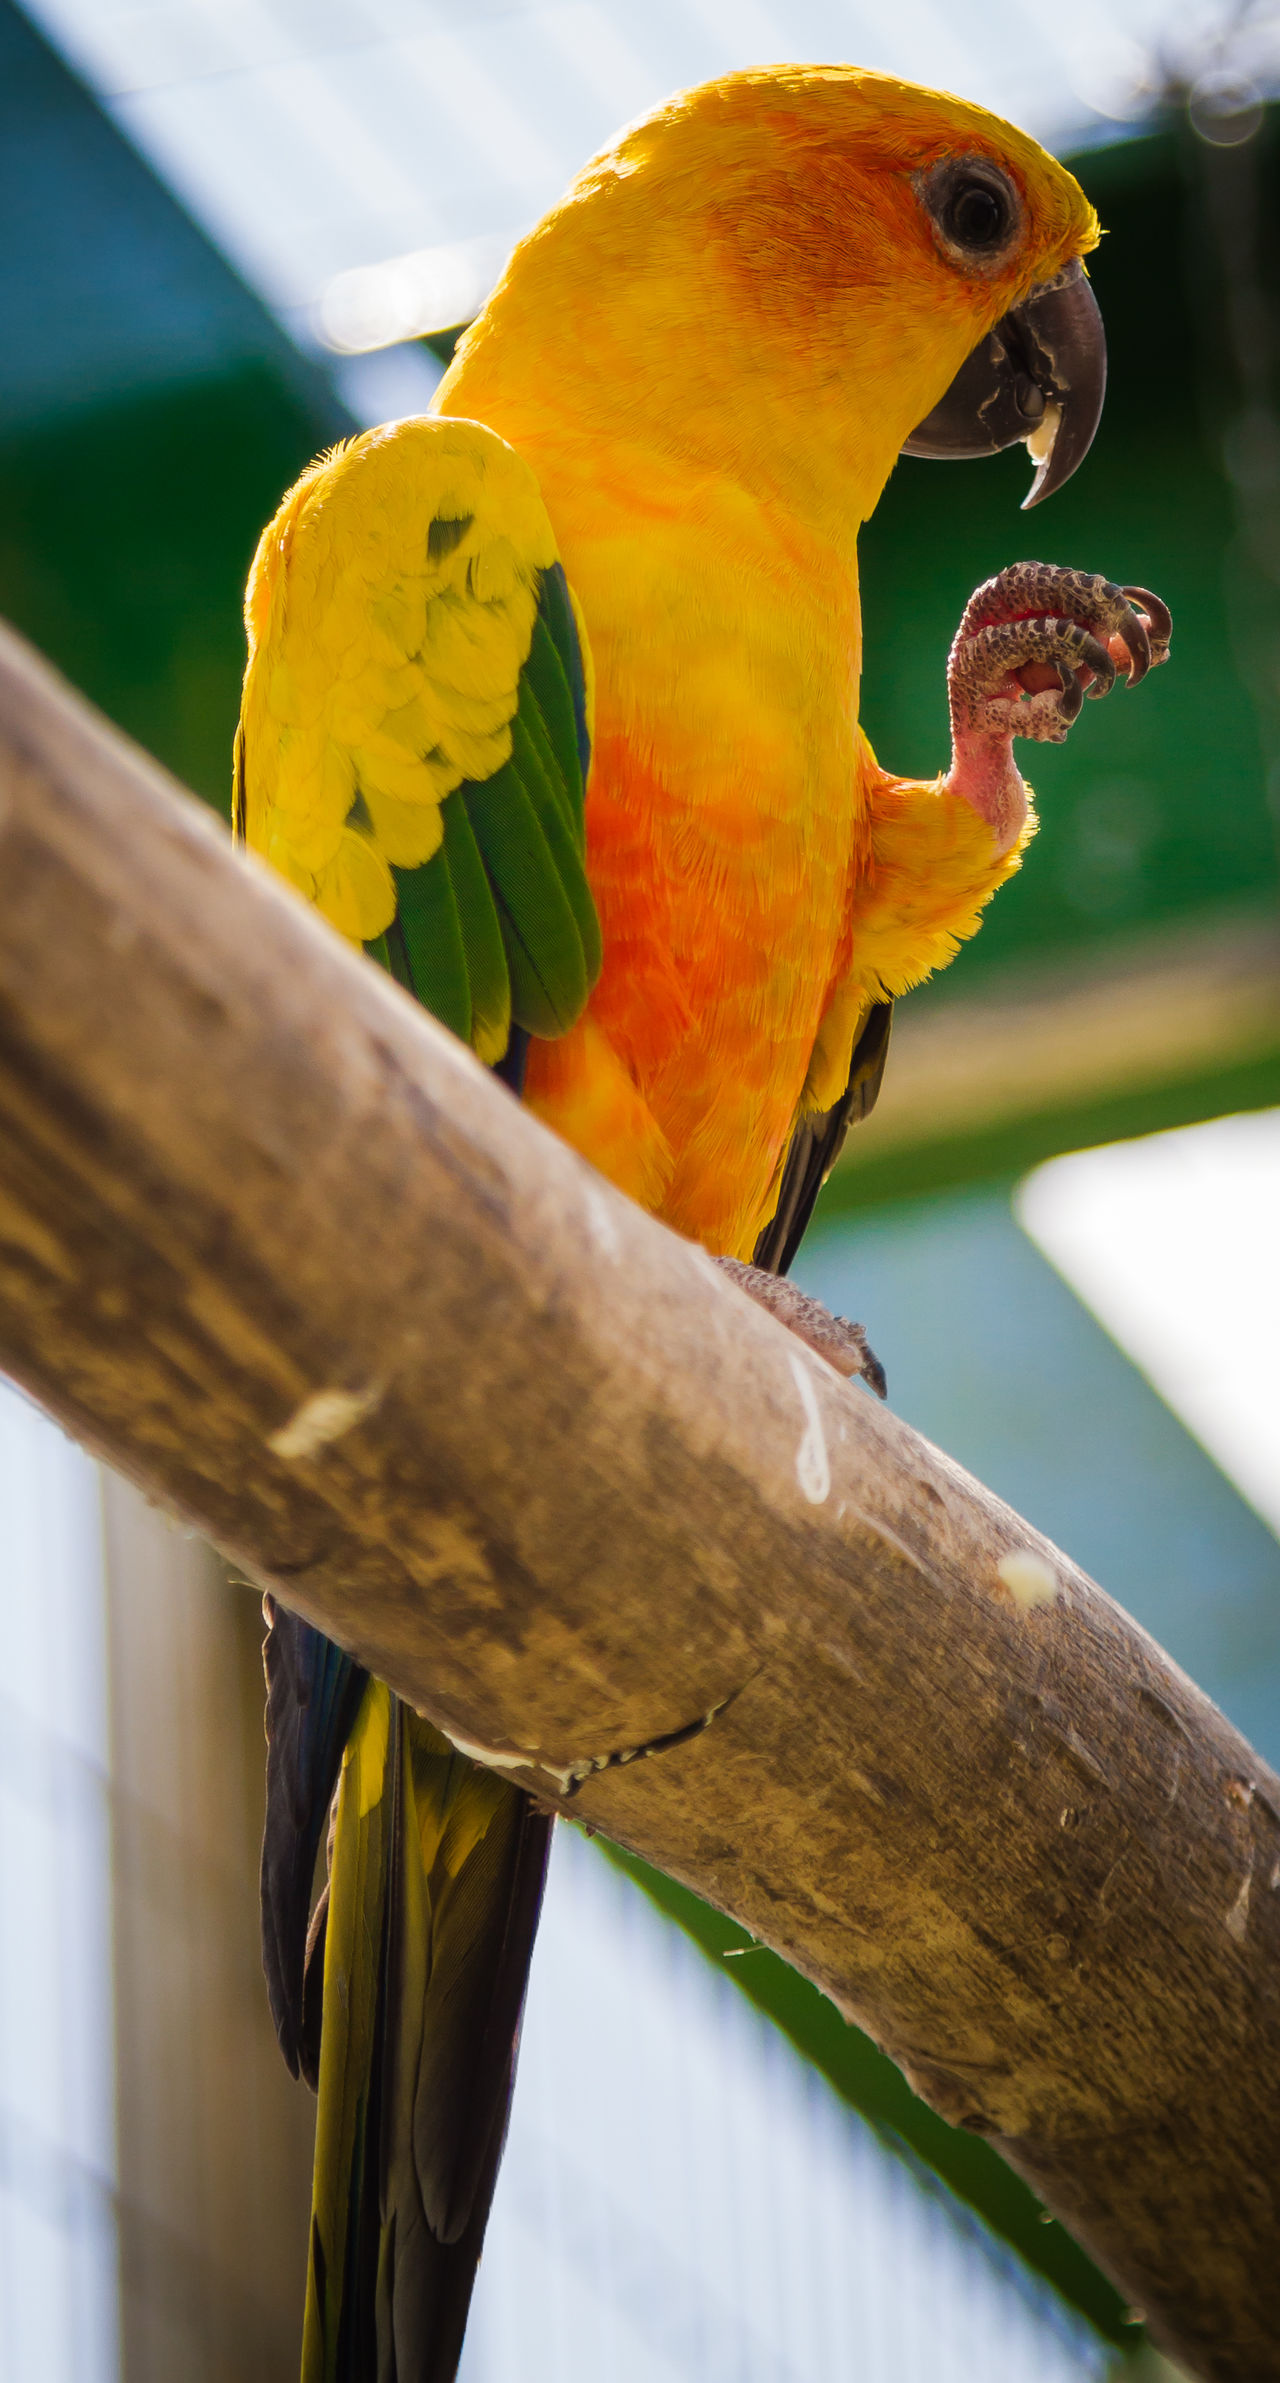 Animal Themes Animal Wildlife Animals In The Wild Beauty In Nature Bird Branch Close-up Day Focus On Foreground Gold And Blue Macaw Macaw Nature No People One Animal Outdoors Parrot Perching Rainbow Lorikeet Tree